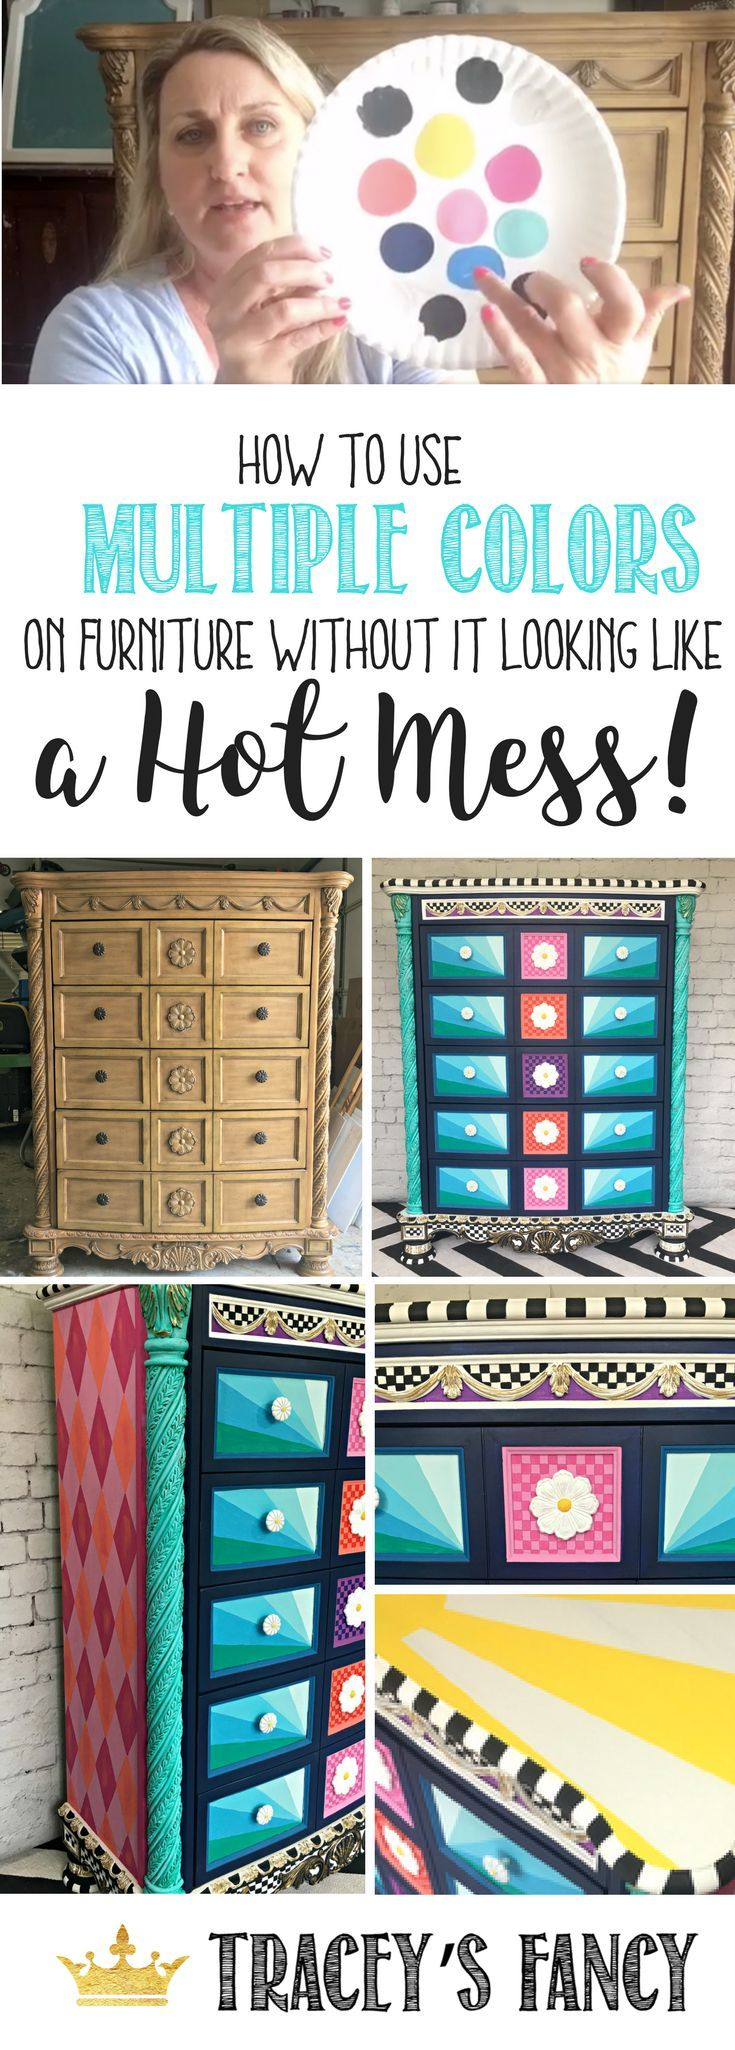 How to use multiple colors on furniture without it looking like a hot mess - Tracey's Fancy shows you how to mix colors on painted furniture and paint furniture with a unique personality not out of a box. Children's furniture ideas. Whimsical Furniture | How to paint furniture | Furniture Painting TIps